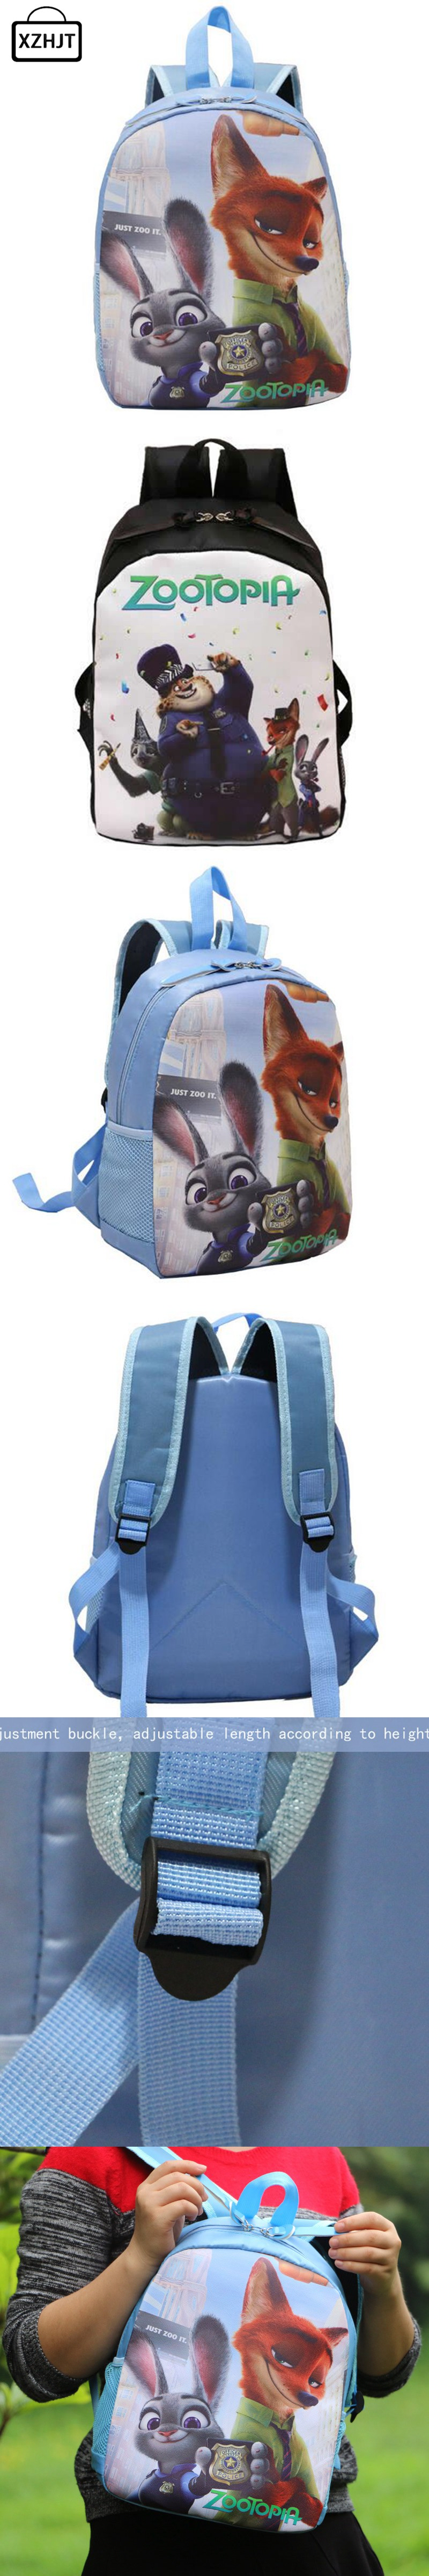 Hot Sale Cartoon Kids Zootopia School Bags Cute Animation ...